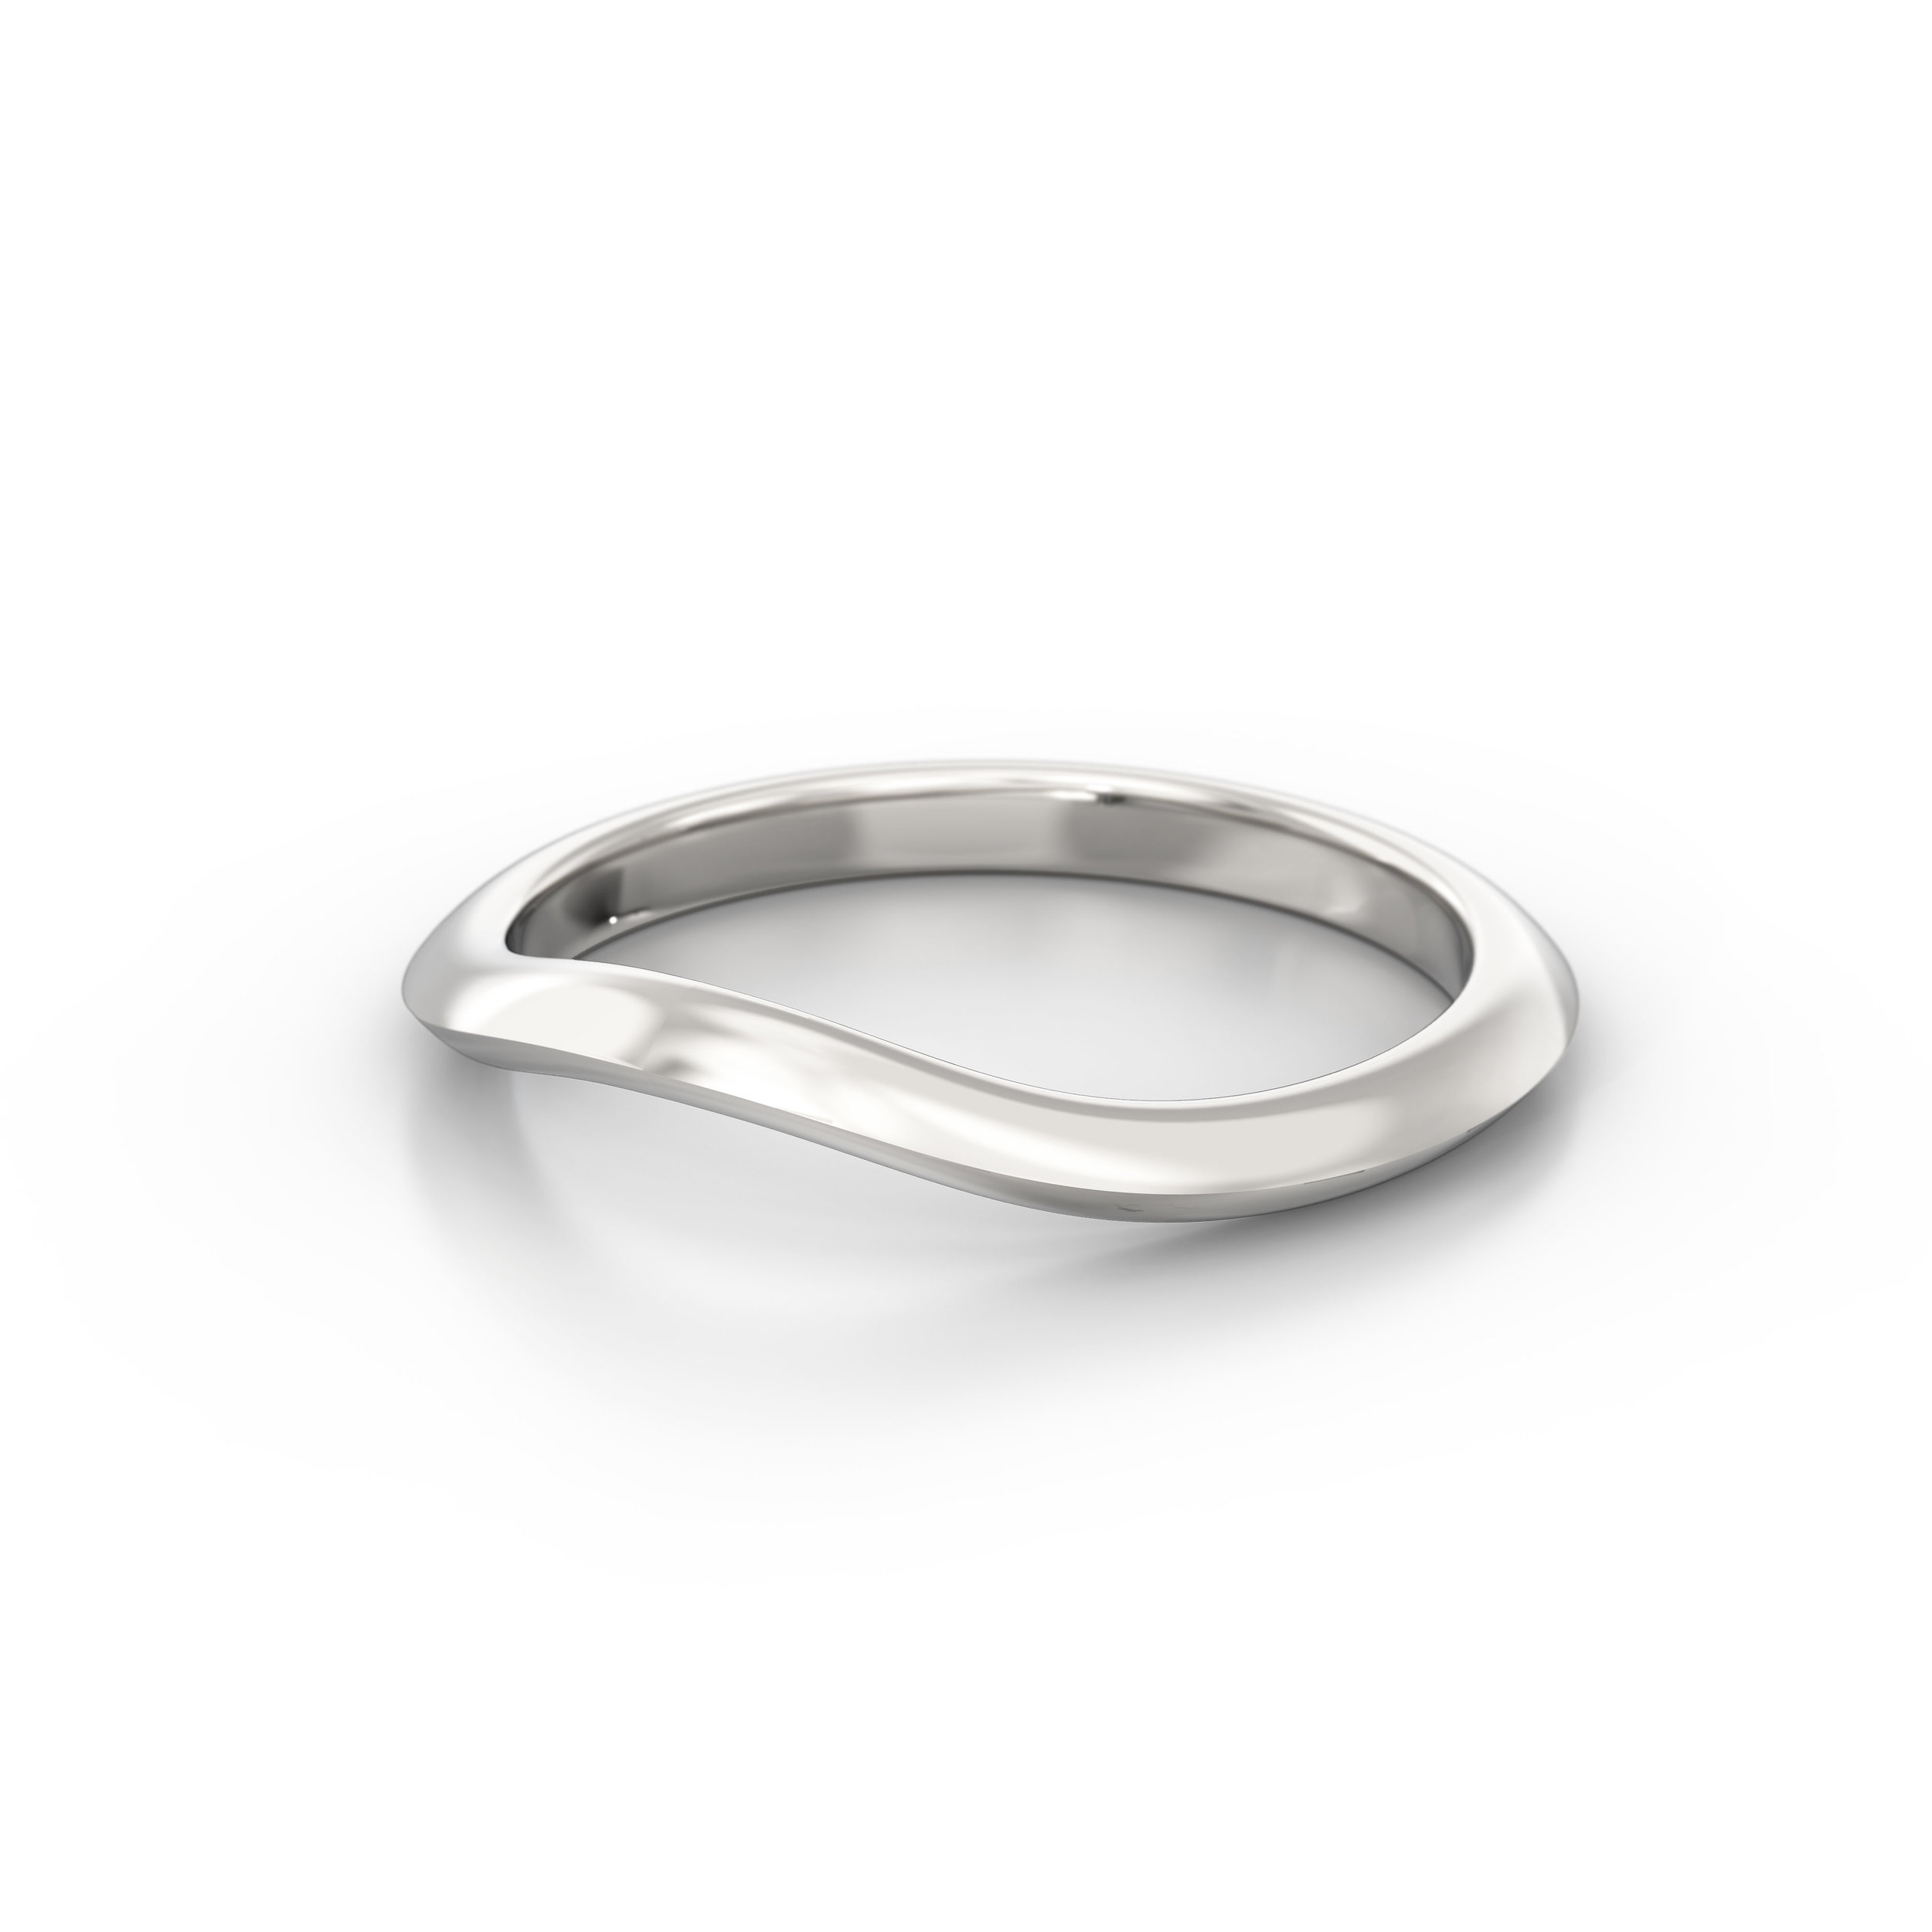 Knife edge wedding band | Hatton Garden | London